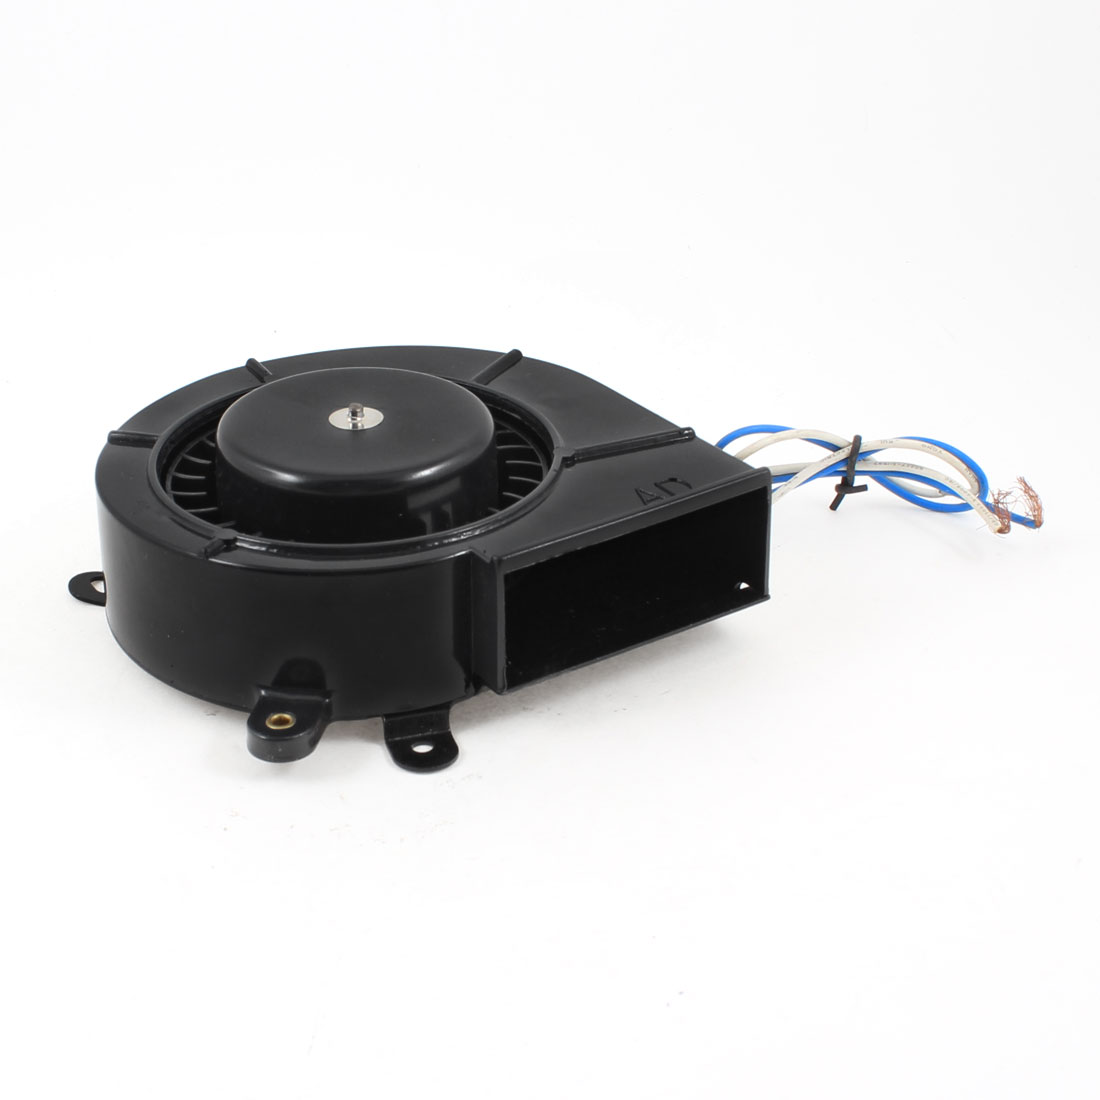 220V 13W 2400r/min Repair Part Disinfection Cabinet Moisturizing Motor